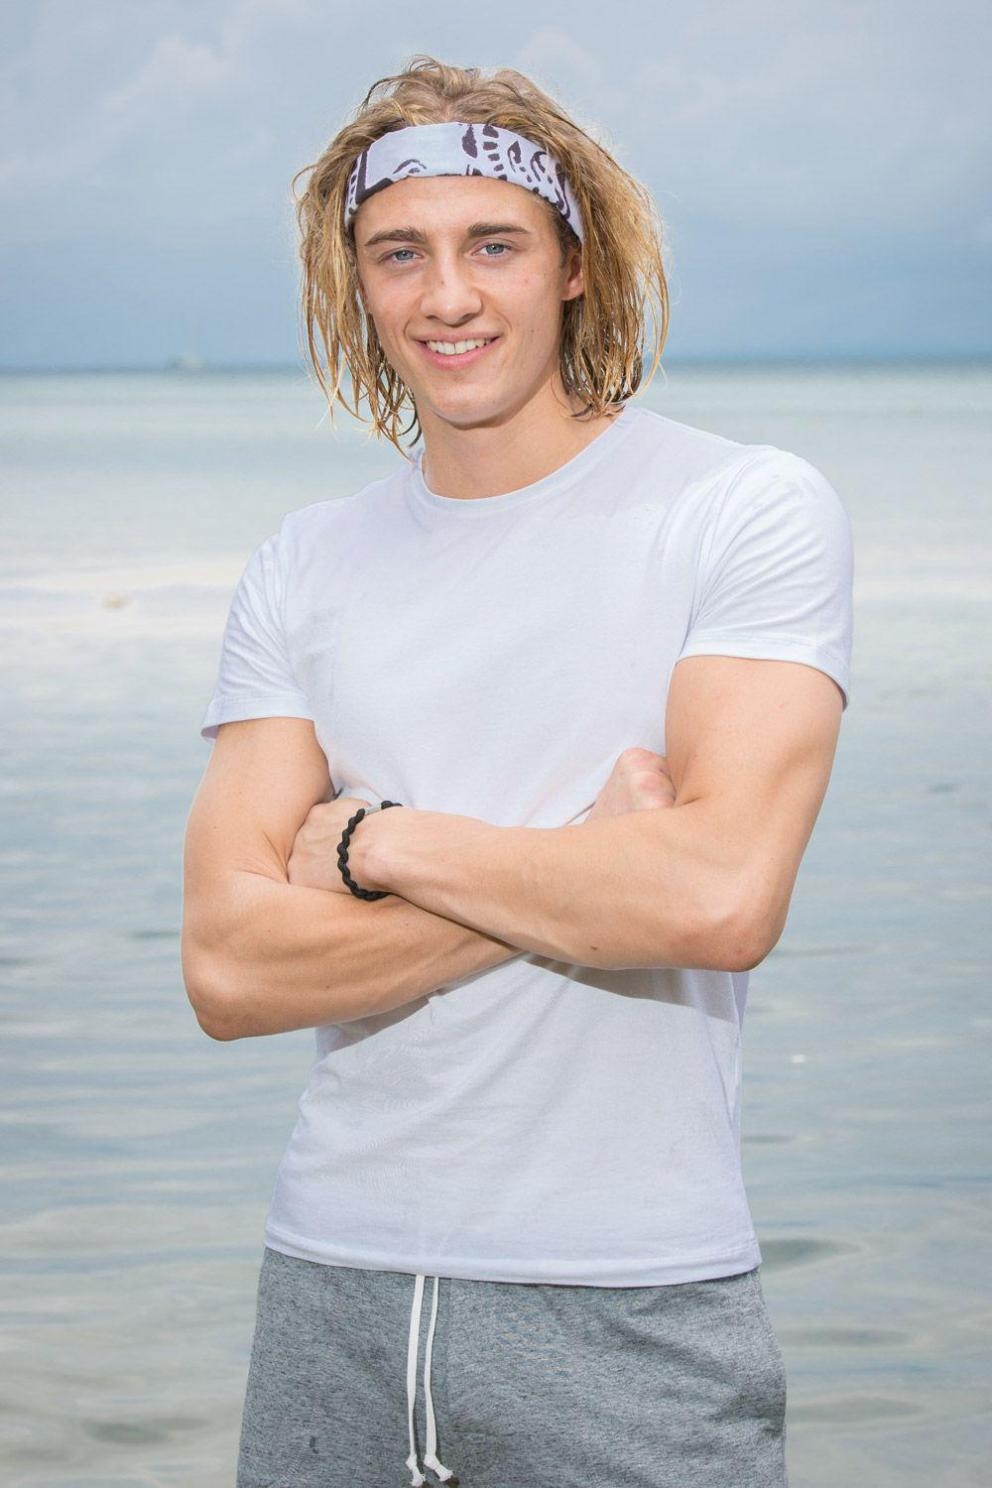 Dylan thiry wiki koh lanta fandom powered by wikia - Agence pascal ...